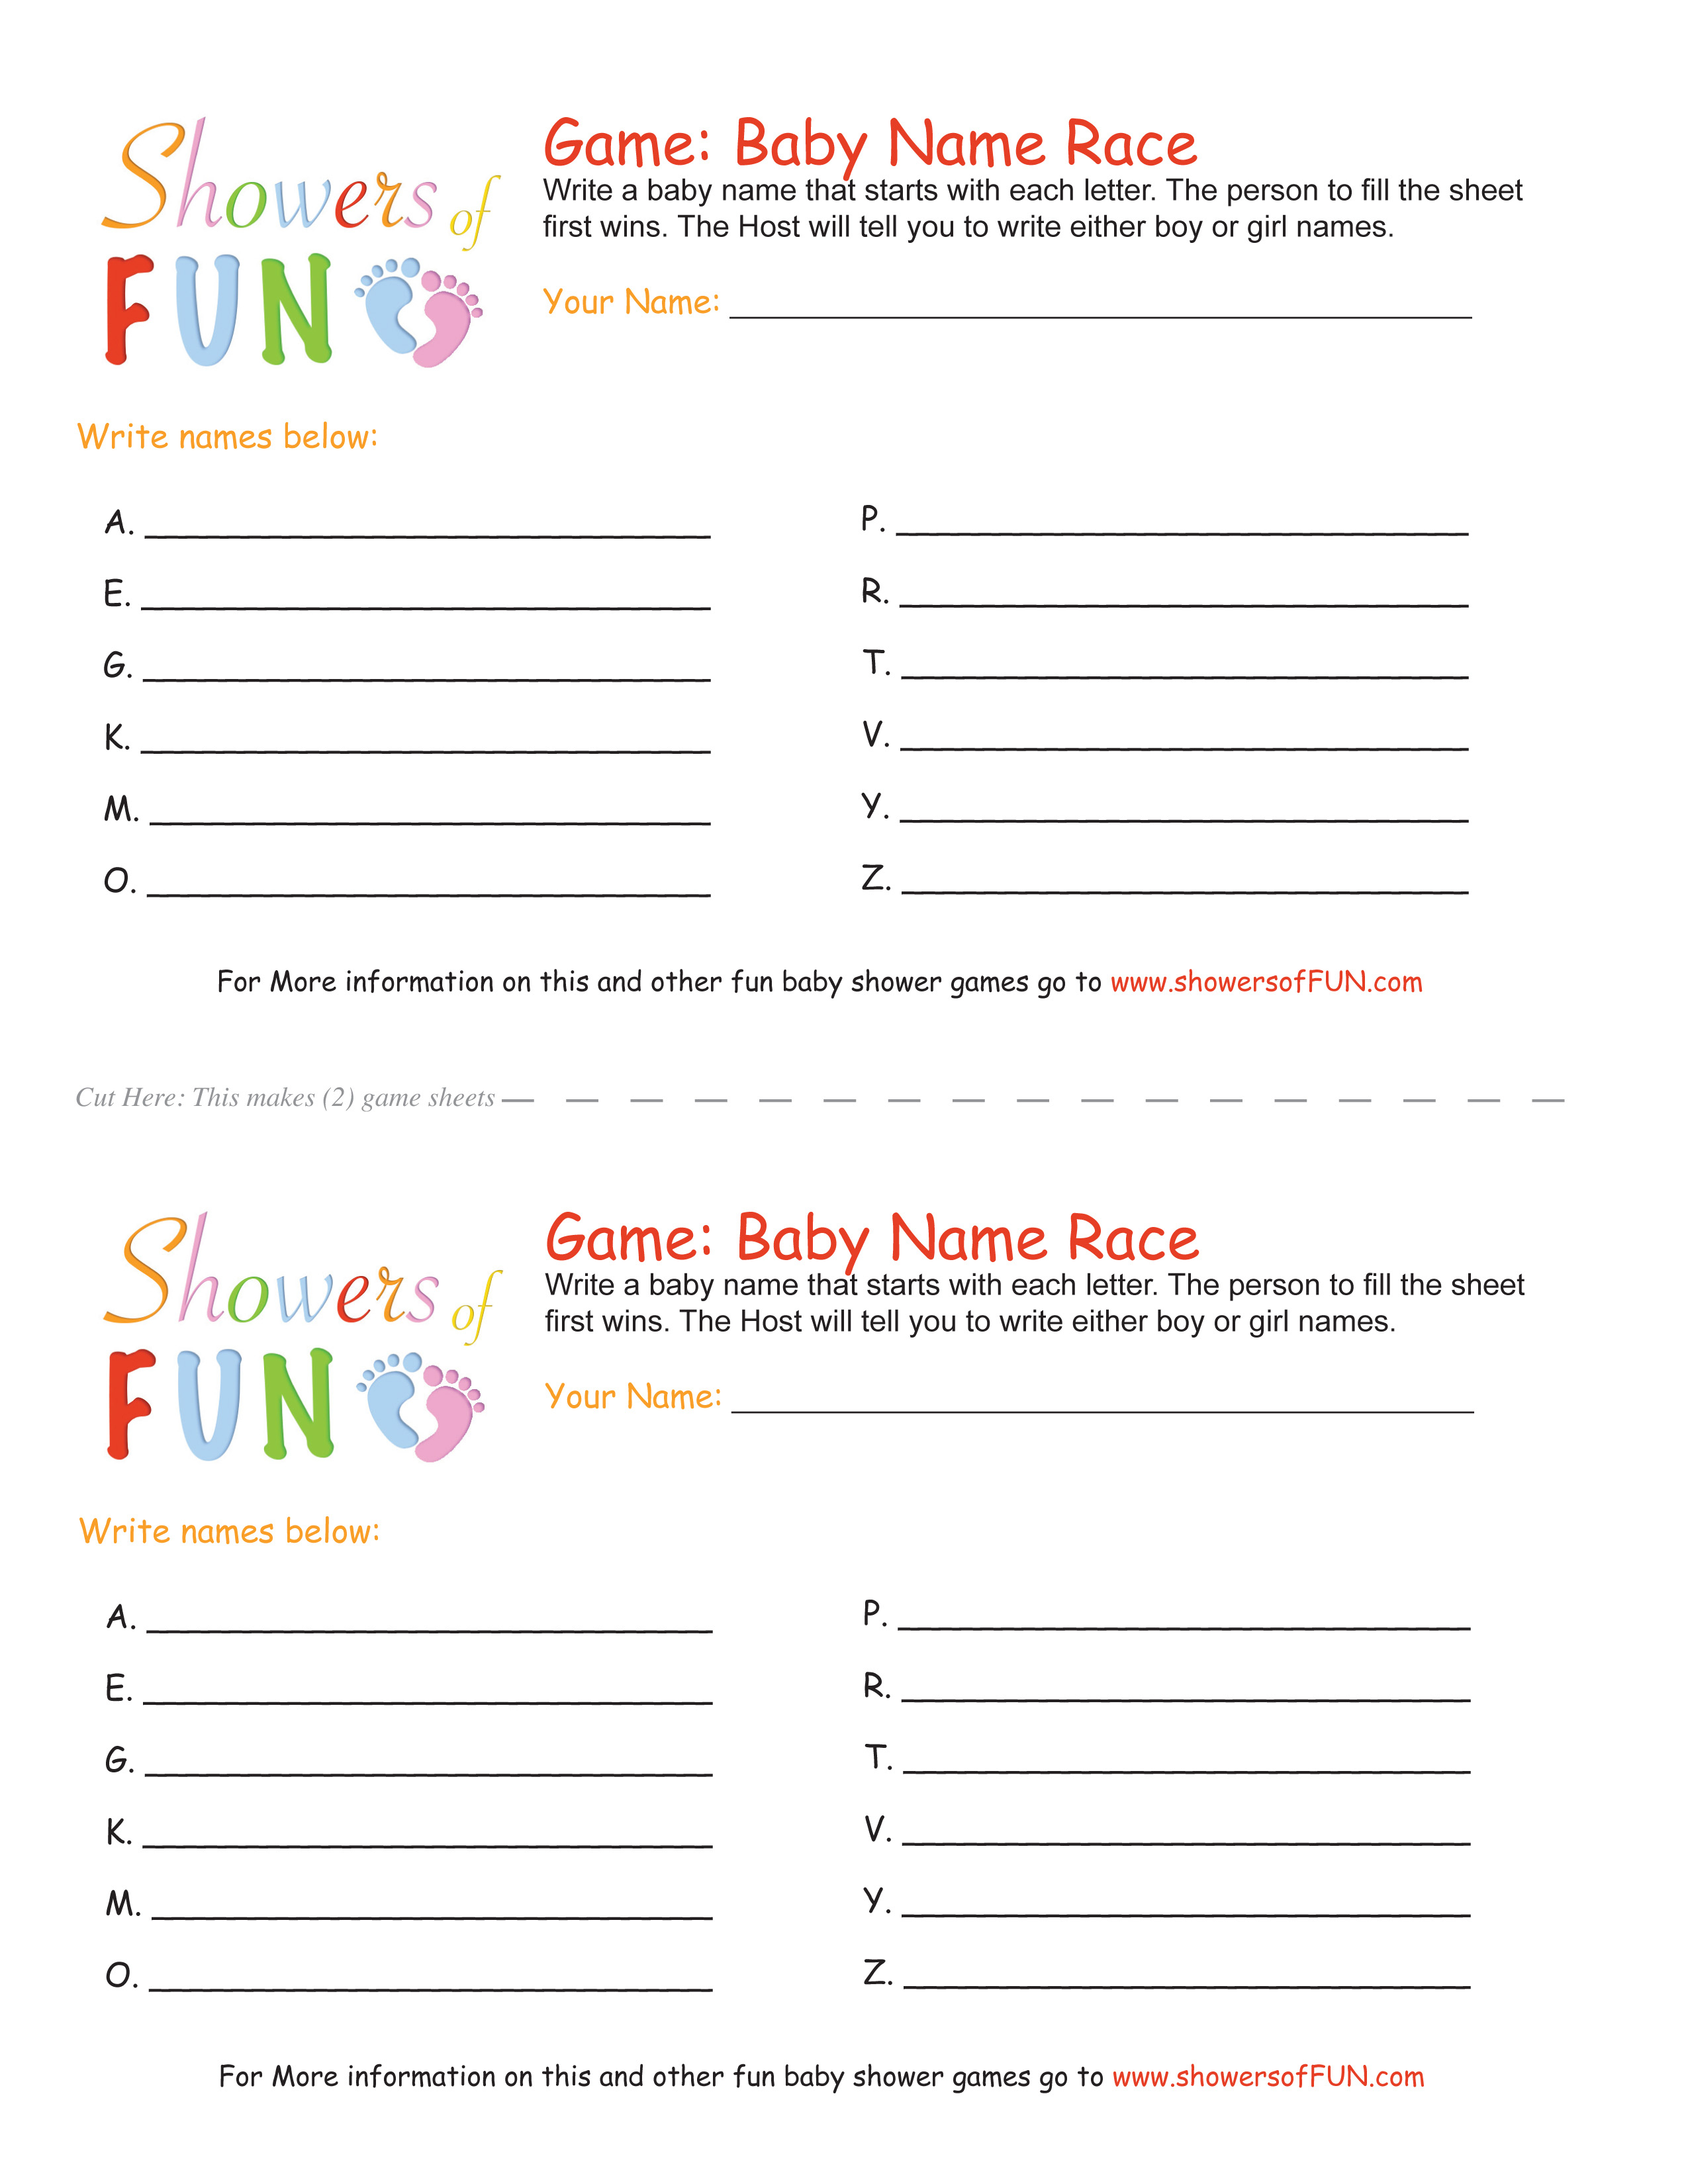 The Baby Name Race Baby Shower Game - Baby Name Race Free Printable